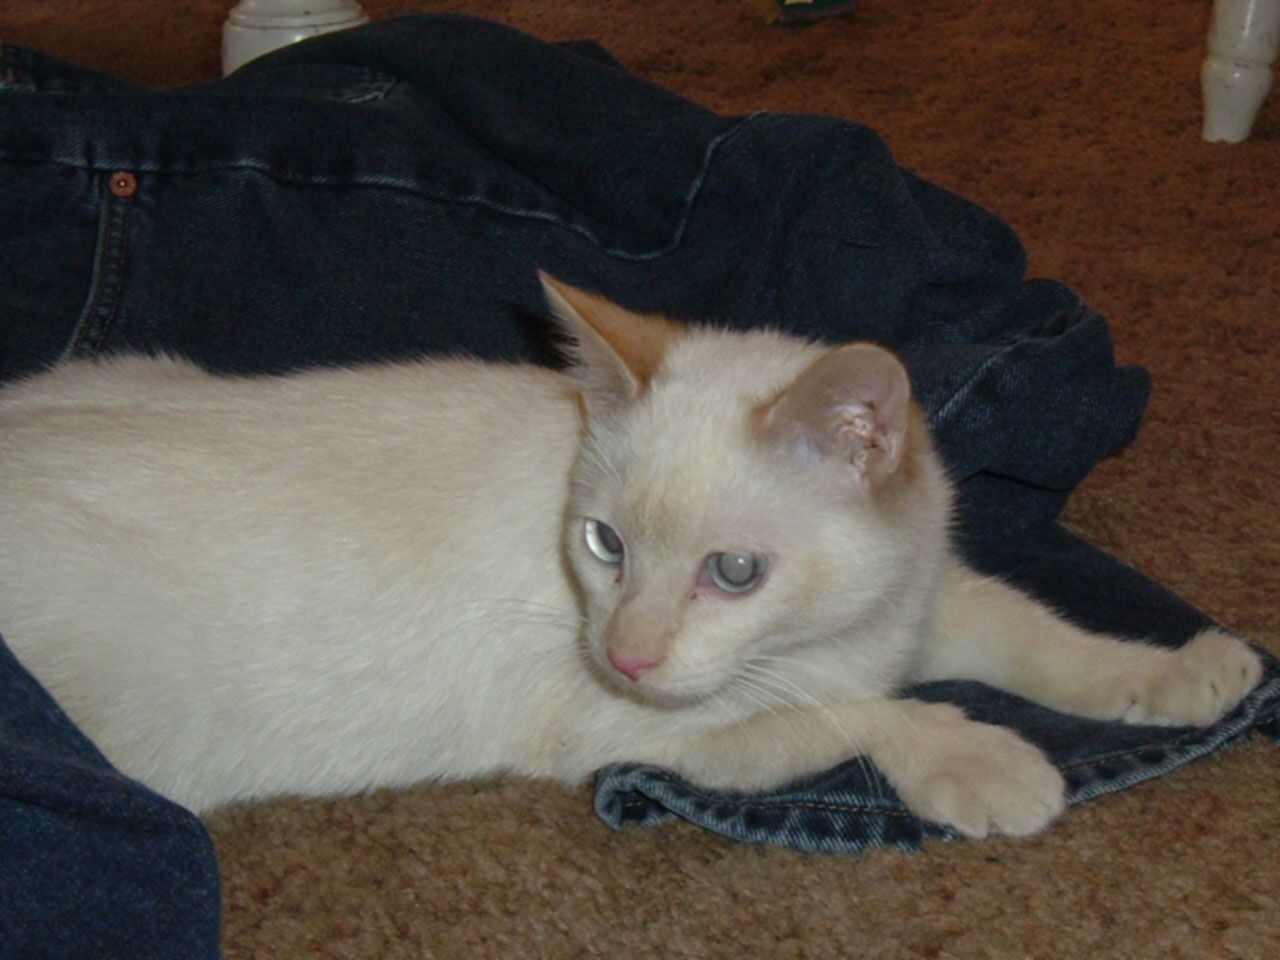 A white cat lays on a pair of blue jeans.